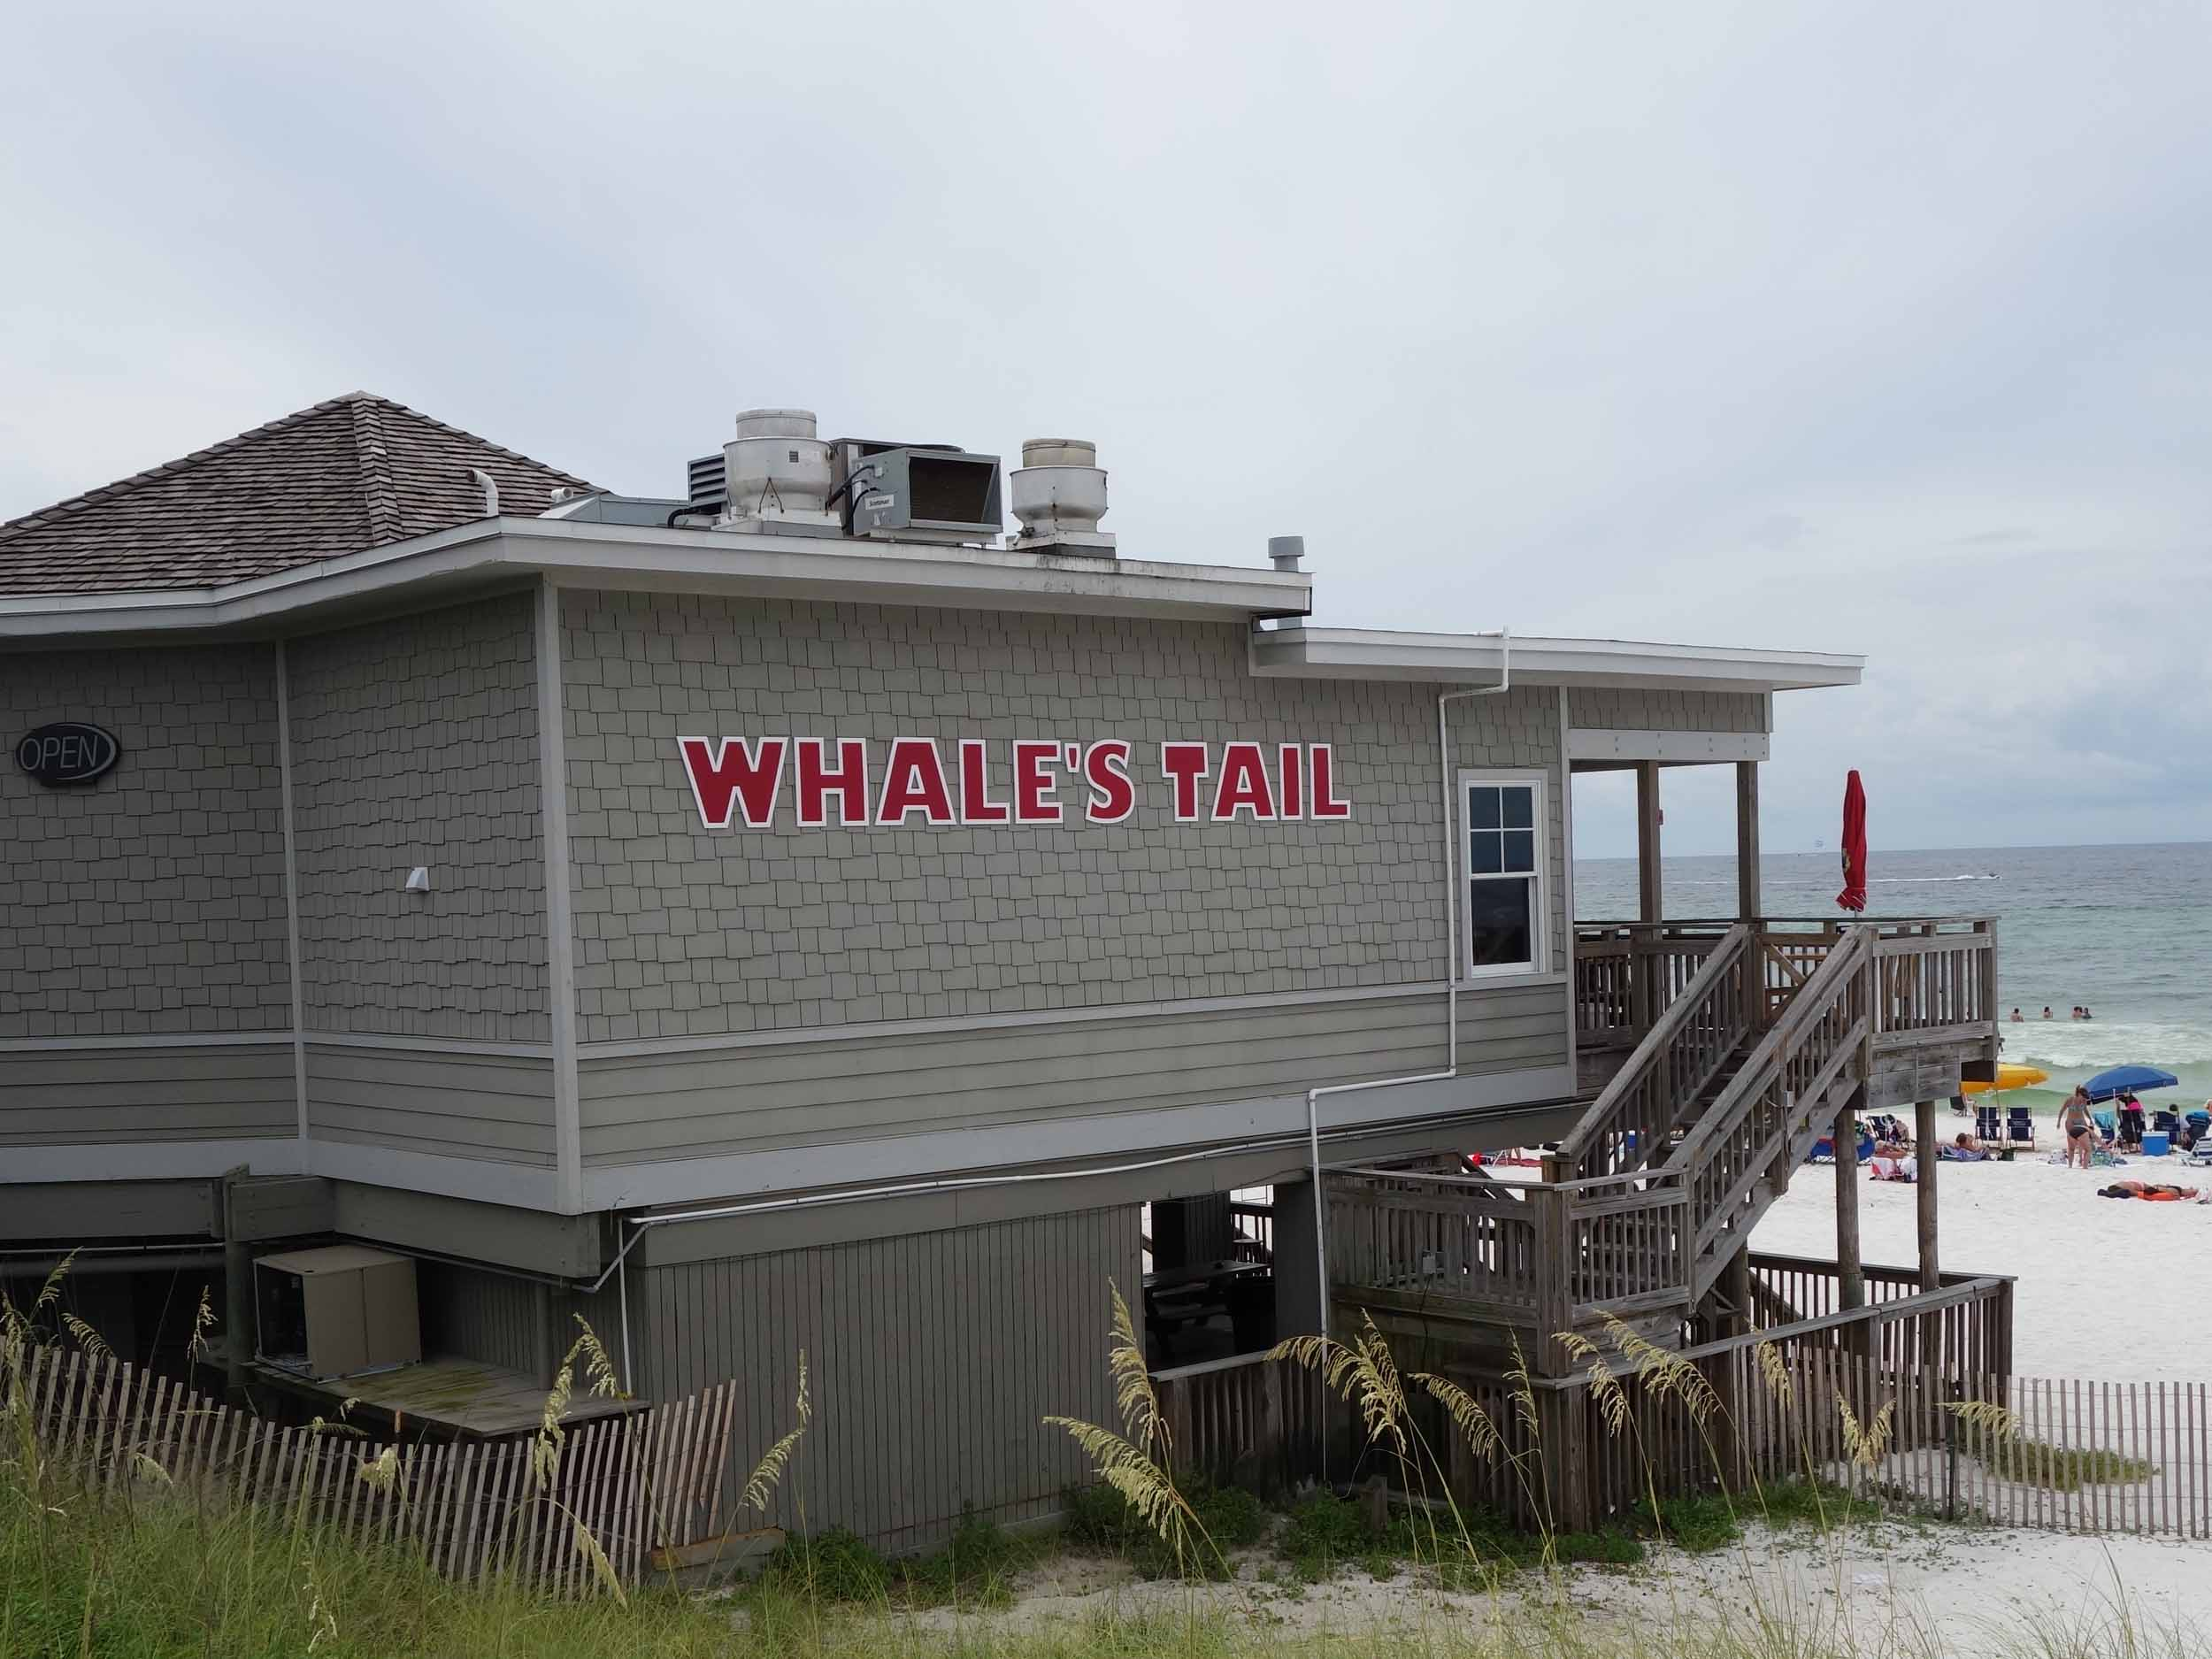 Whale's Tail Beach Bar Exterior